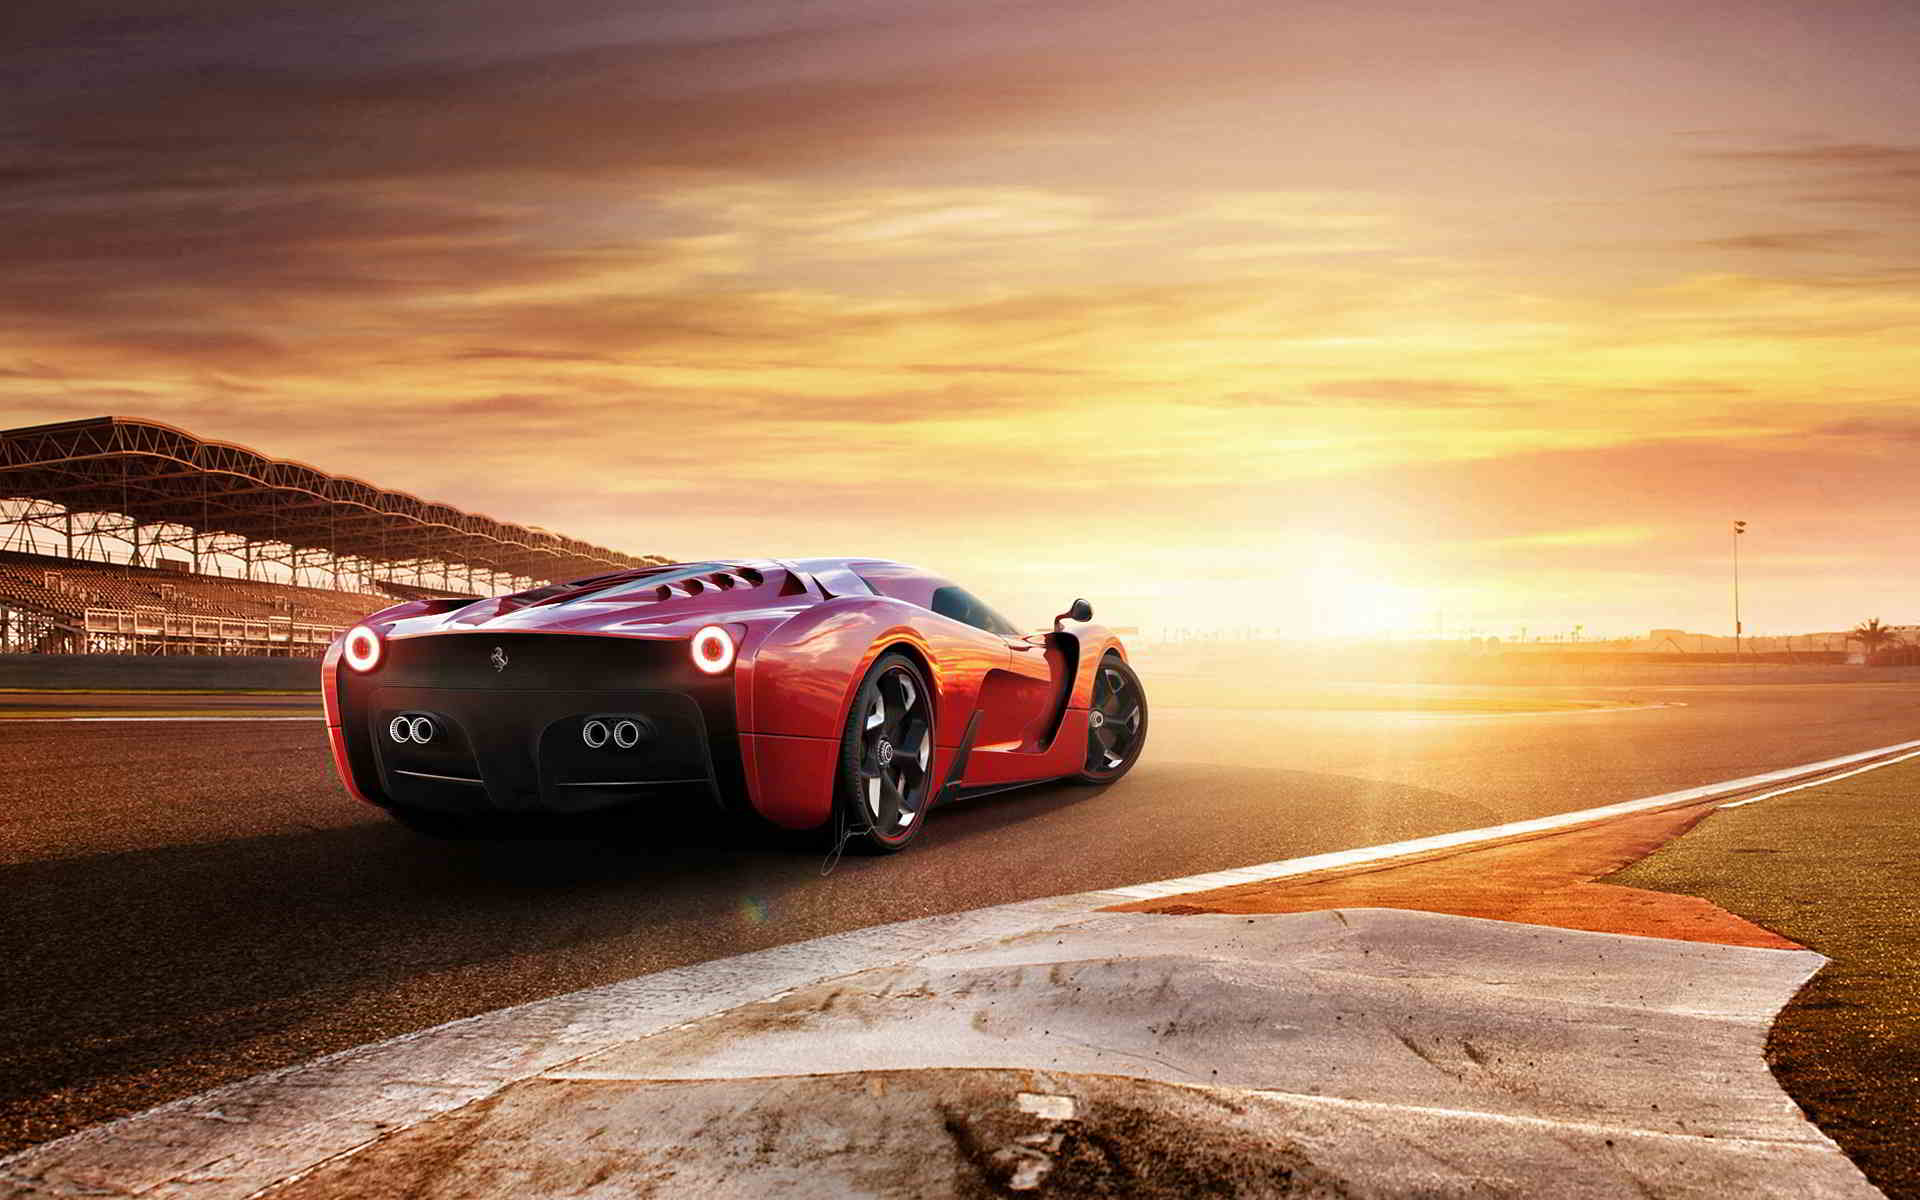 46 Full Hd Cool Car Wallpapers That Look Amazing Free